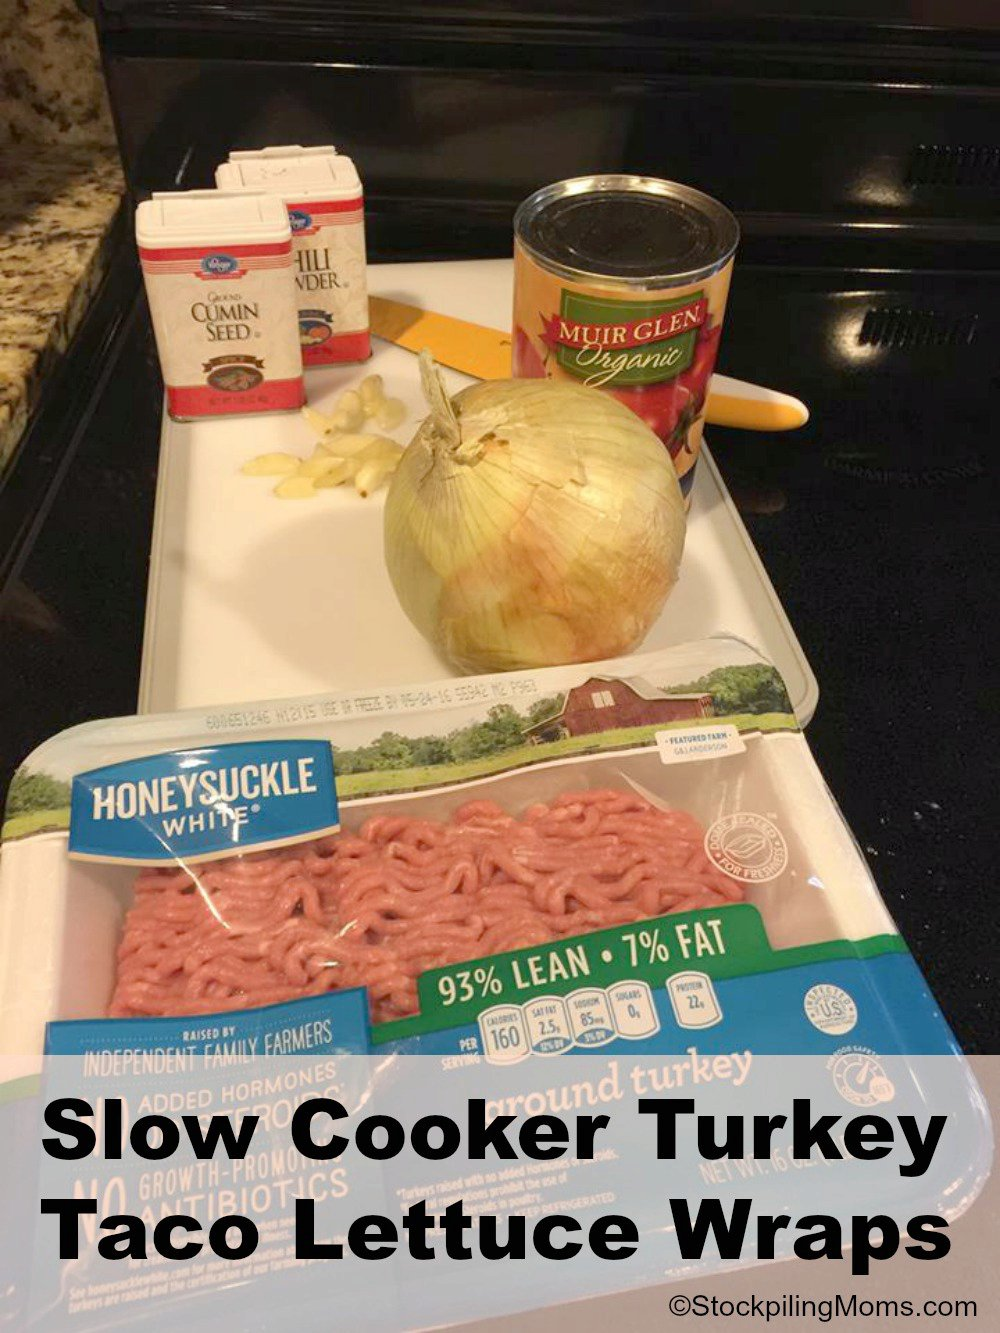 Slow Cooker Turkey Taco Lettuce Wraps